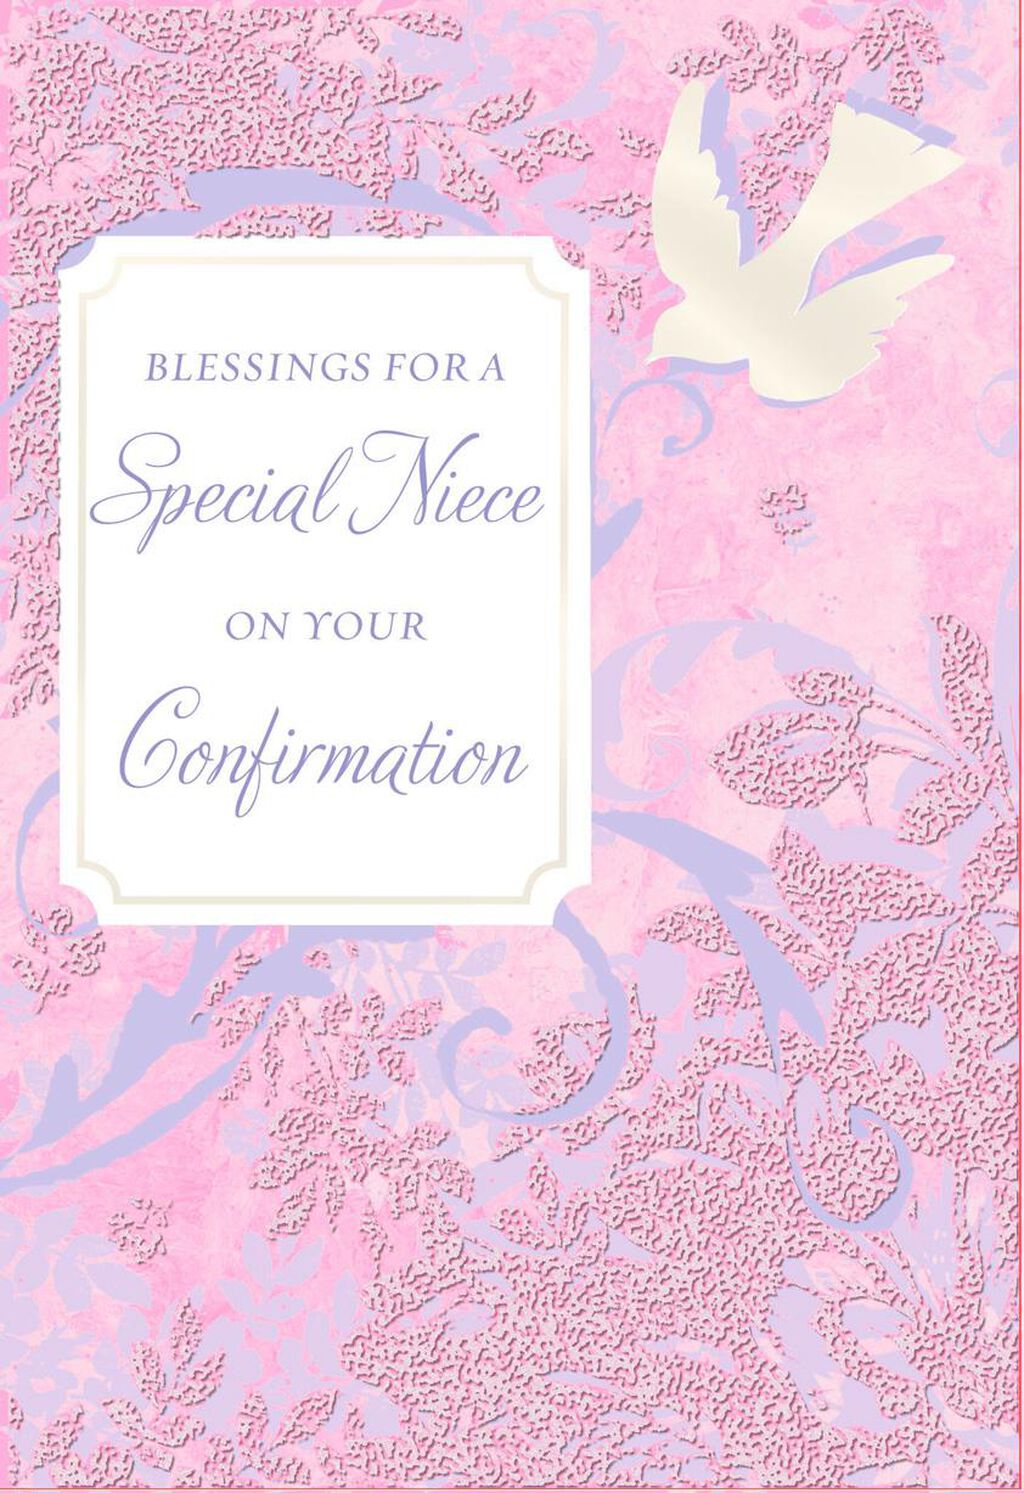 Blessings for a special niece dove confirmation card greeting blessings for a special niece dove confirmation card greeting cards hallmark m4hsunfo